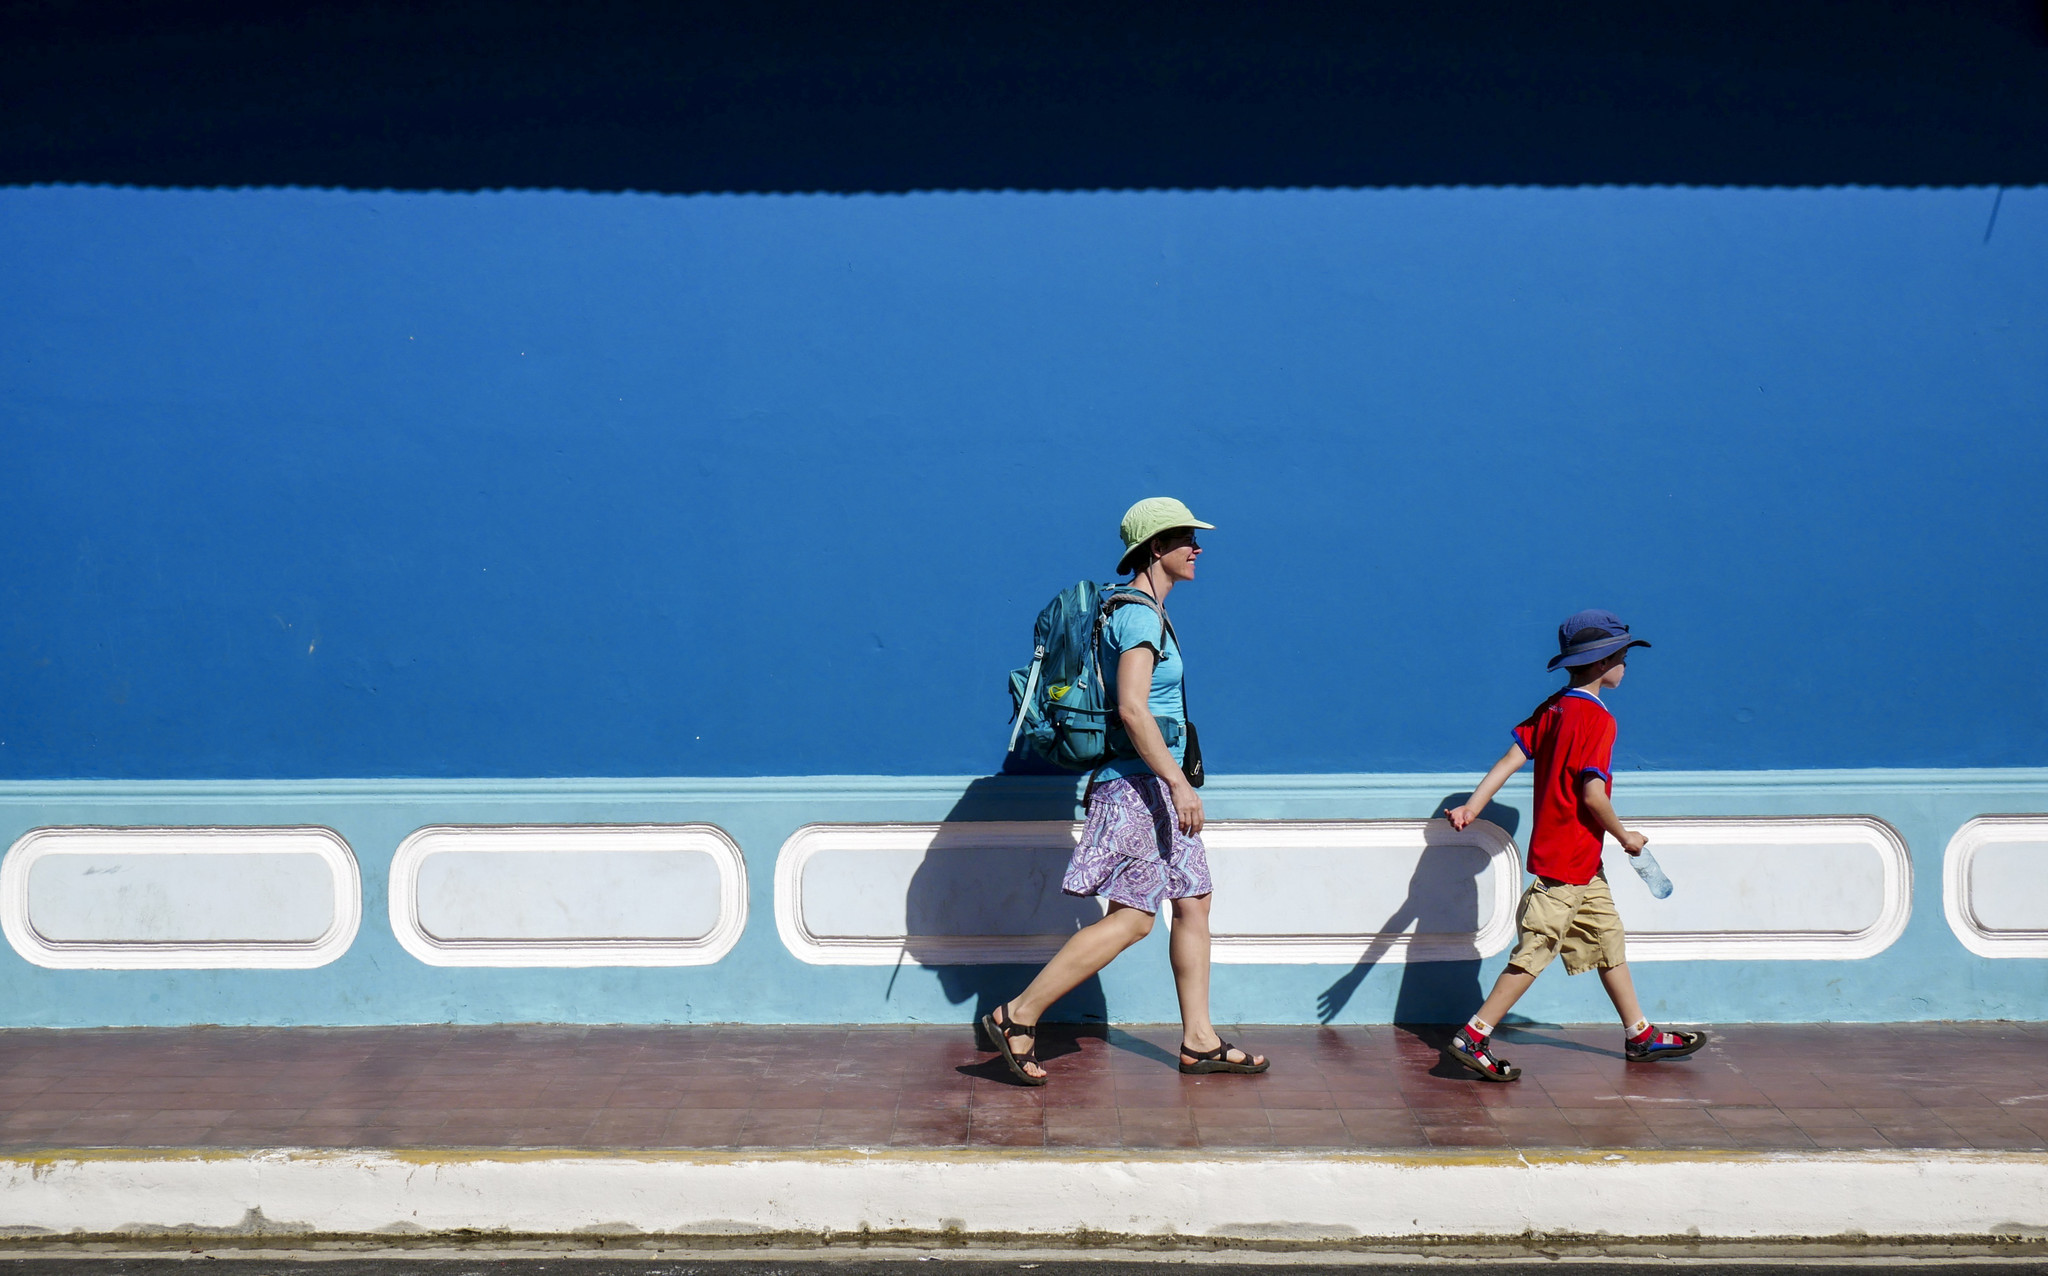 Katie Quirk and son Liam hurry past one of Granada's many bright facades in search of shade.